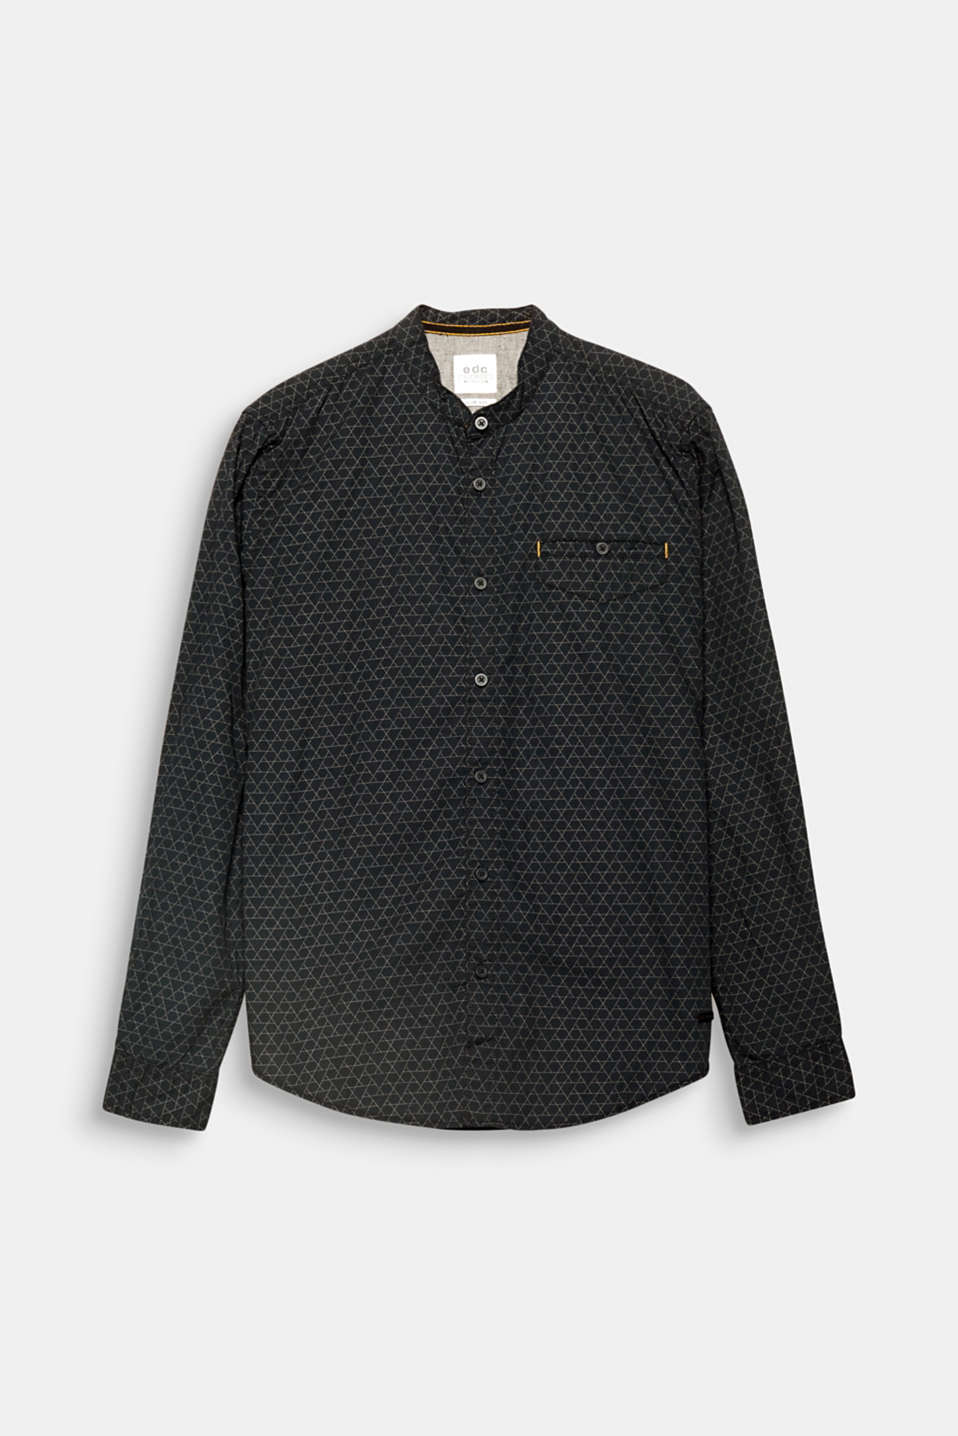 The fine geometric print adds head-turning style to this shirt.